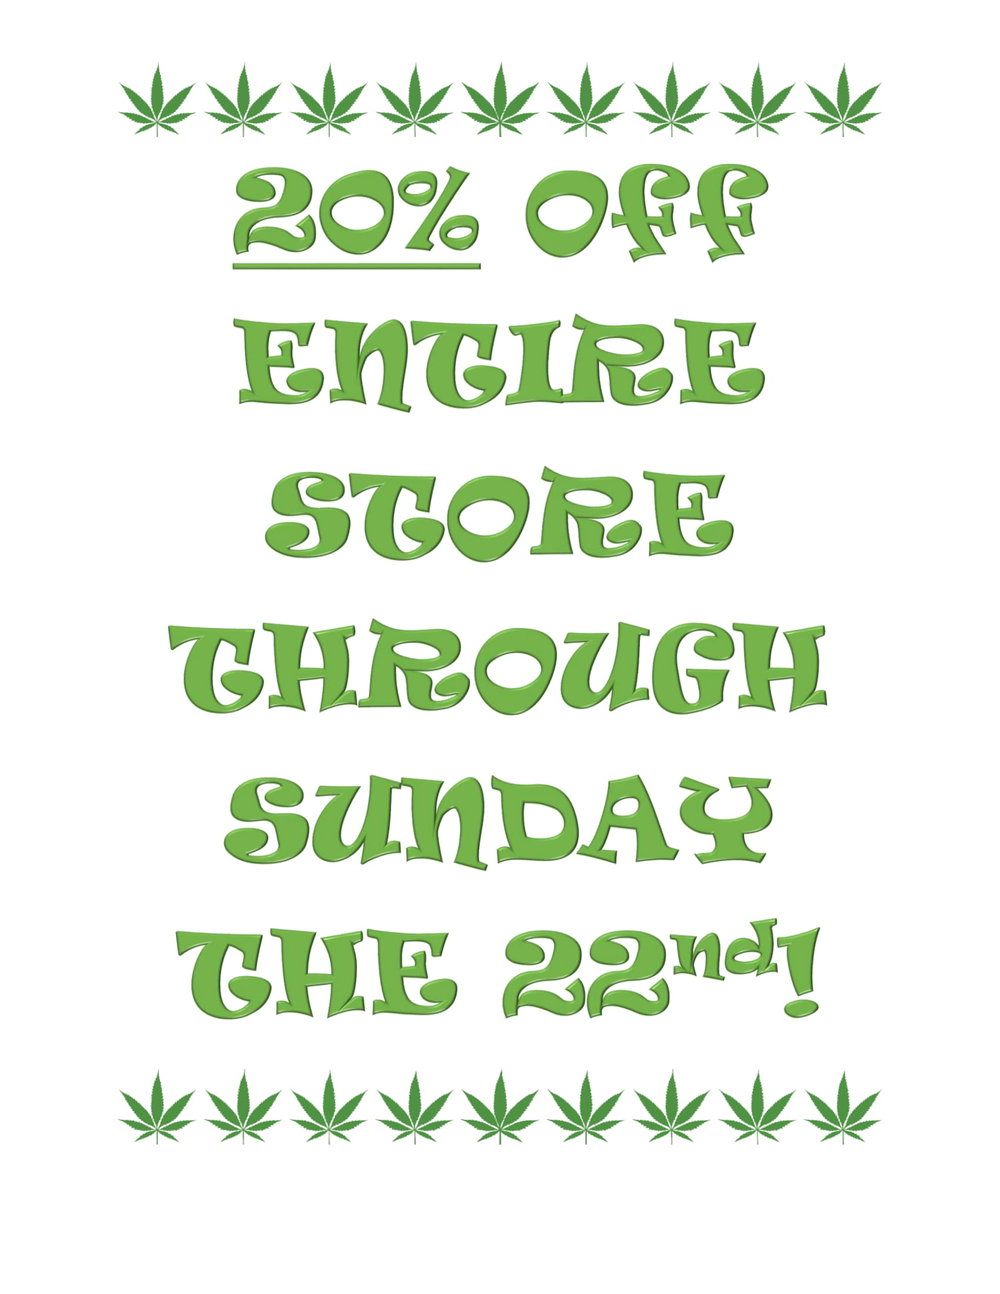 20 percent off through the 22nd sign-1.jpg